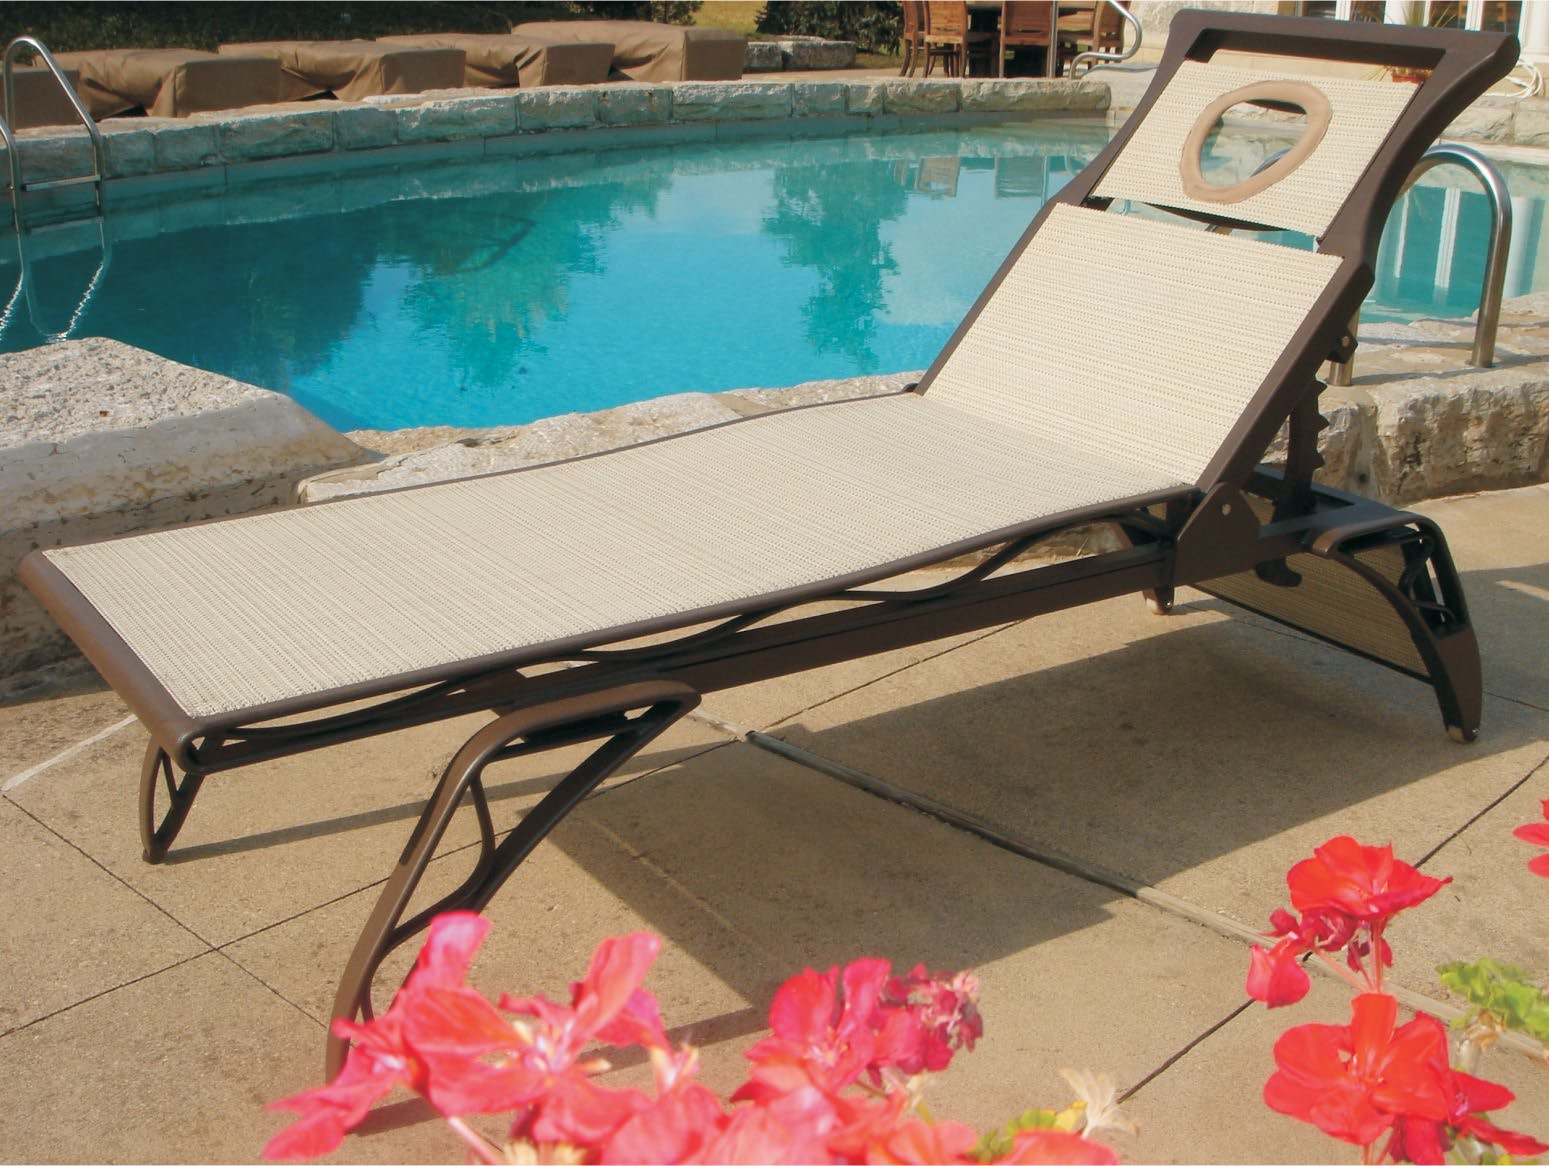 cast chairs wheels chaiseges outdoor depotge home image the aluminum marvelous patio design lounge with chaise